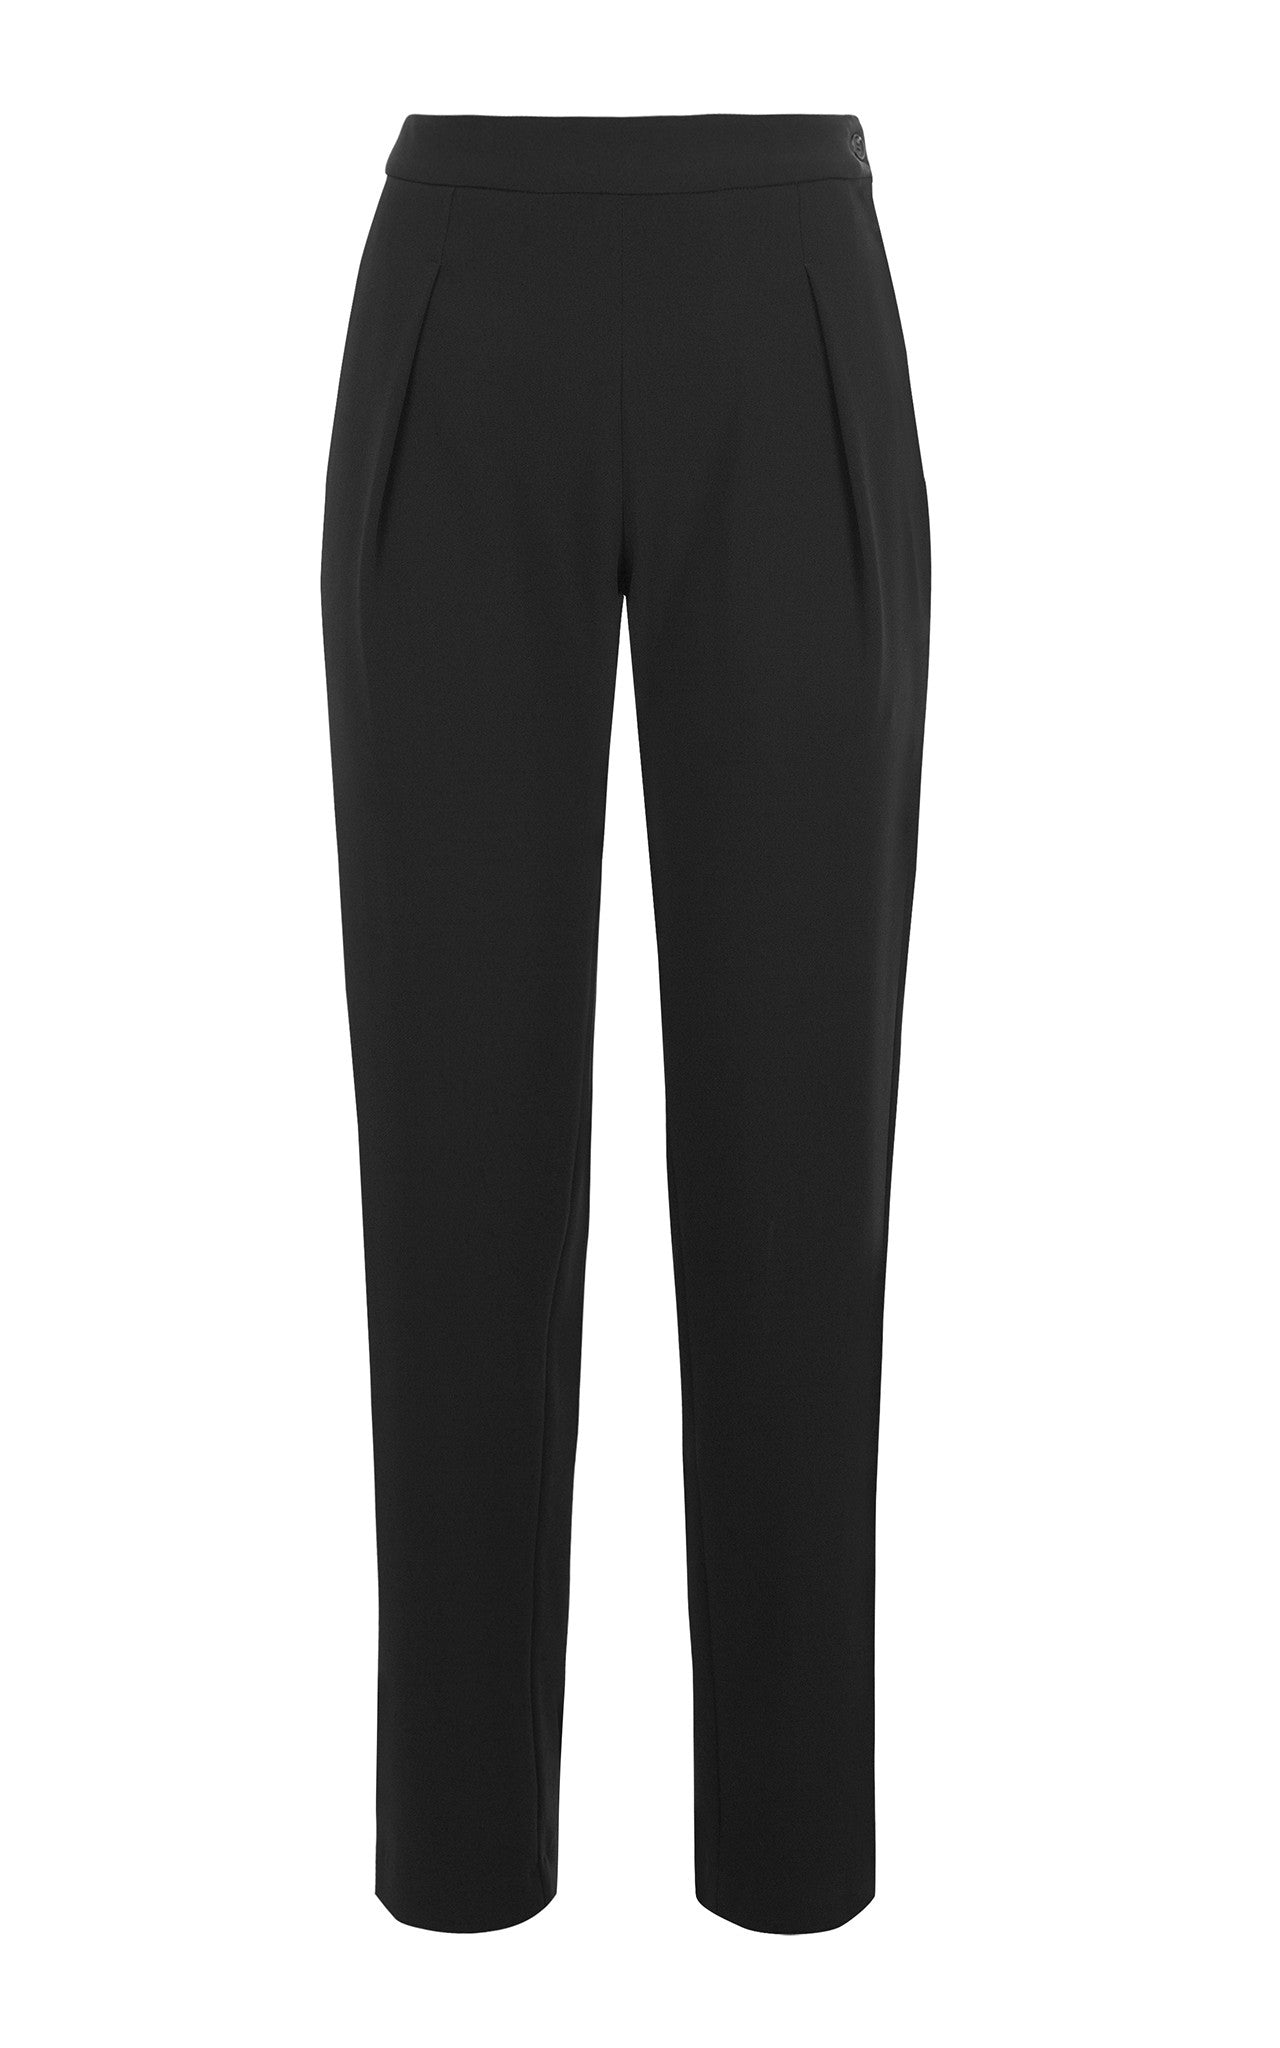 Antipodium Black Cady Tailored Trousers